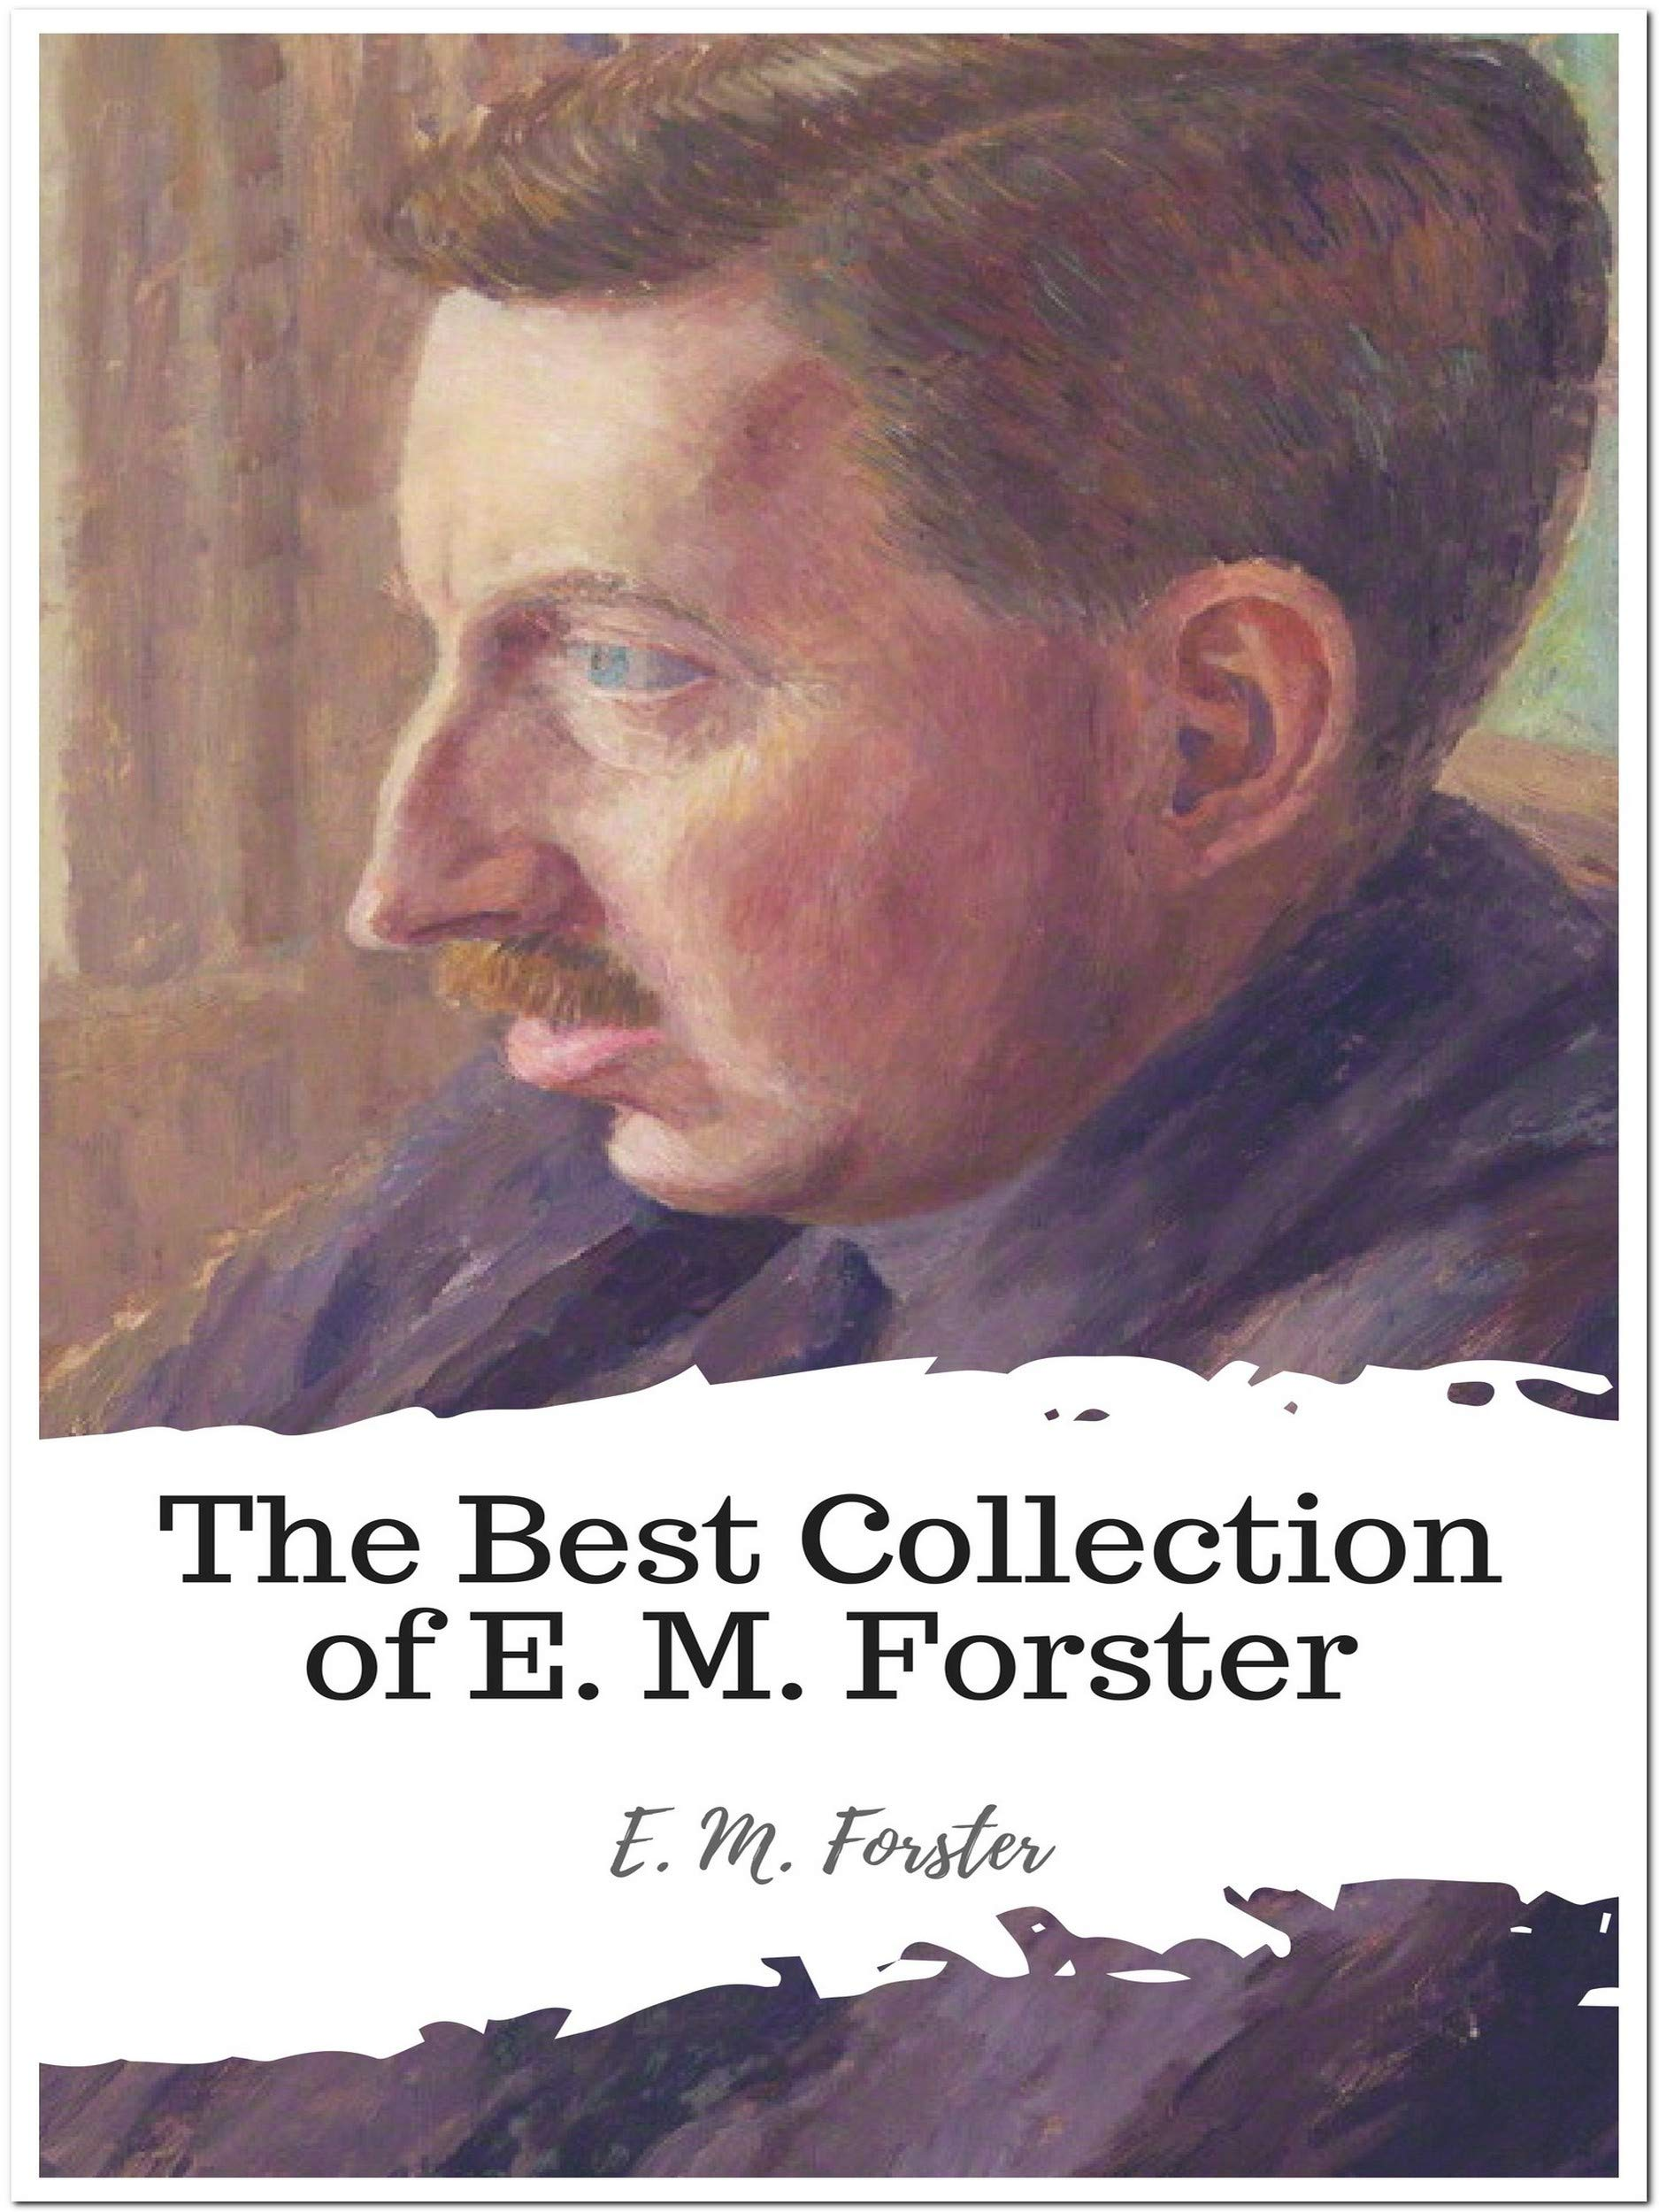 The Best Collection of E. M. Forster (Annotated): Collection Includes A Room With A View, Howards End, The Celestial Omnibus, The Longest Journey, The Machine Stops, Where Angels Fear to Tread